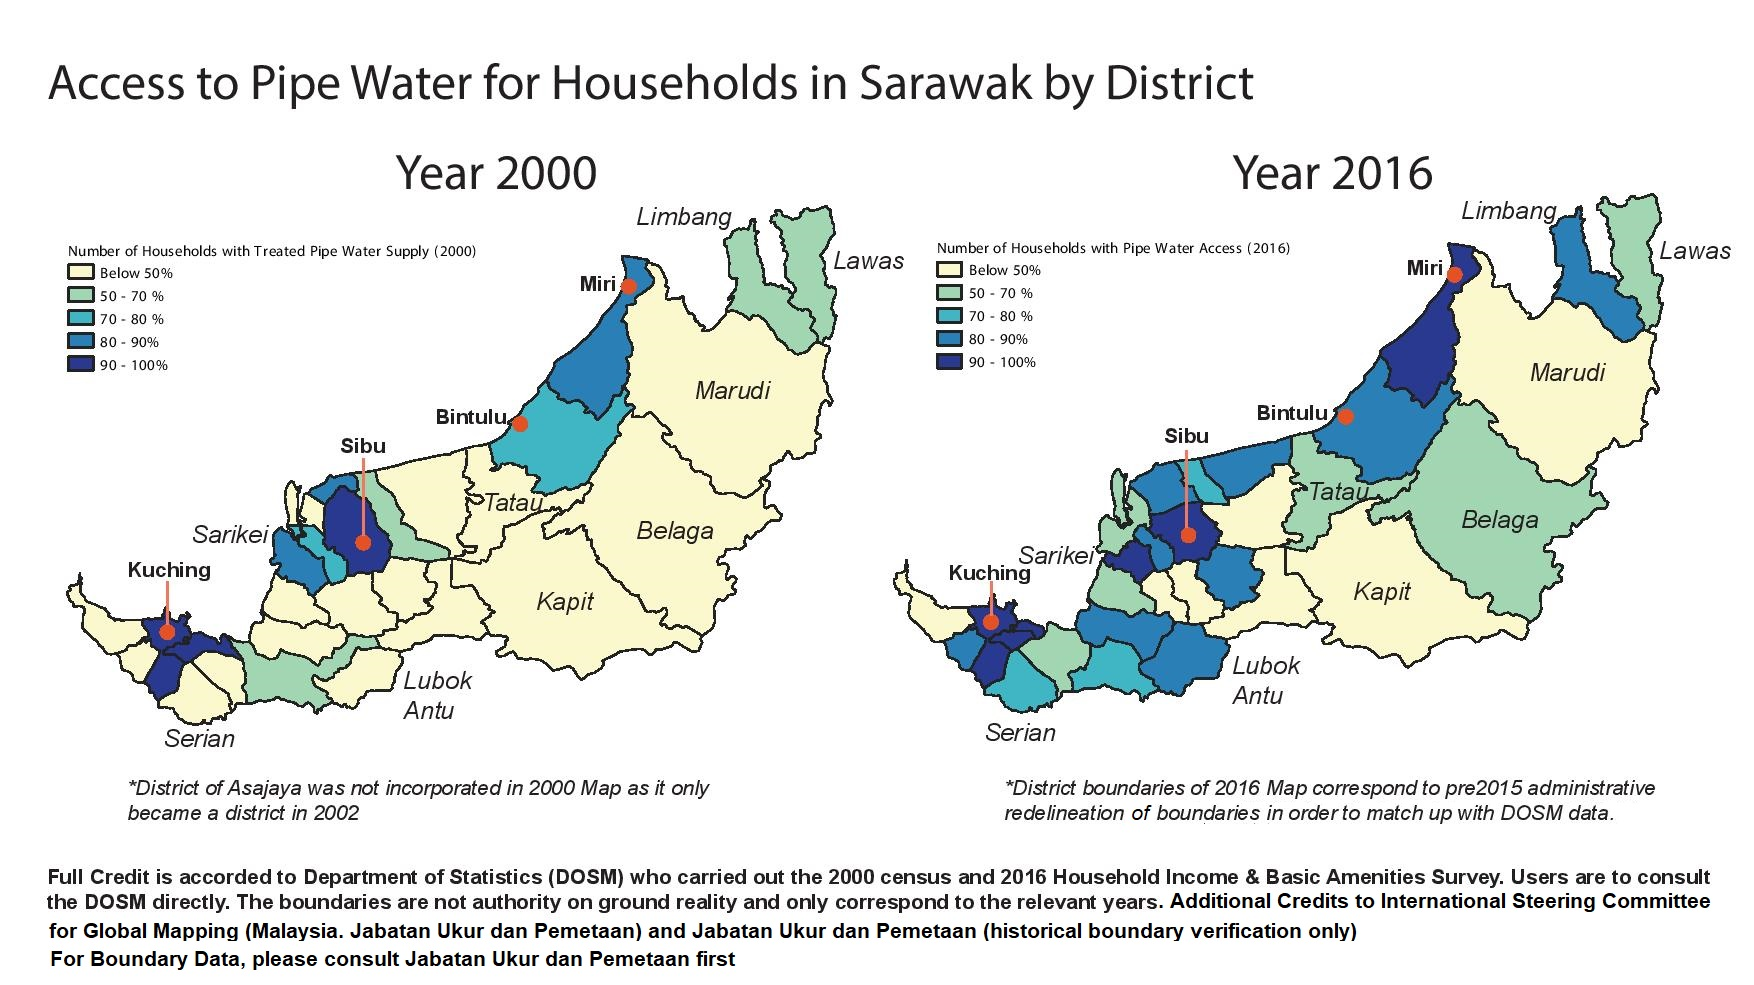 Sarawak_for_Website_Access_to_Piped Water-page-001